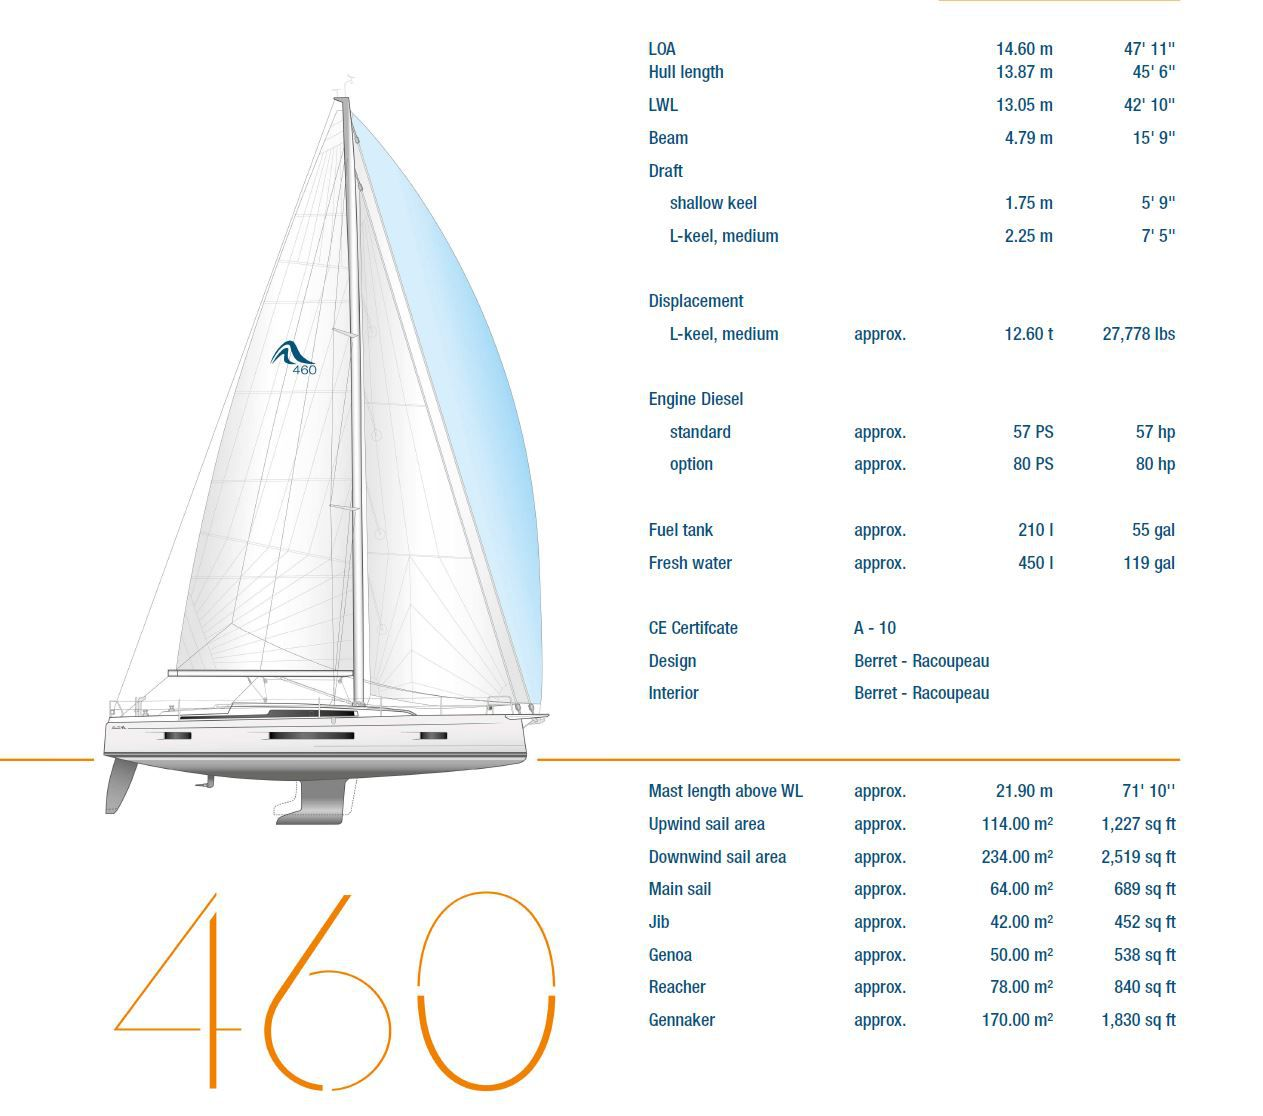 Technical data of the new Hanse 460 on Yachting Art